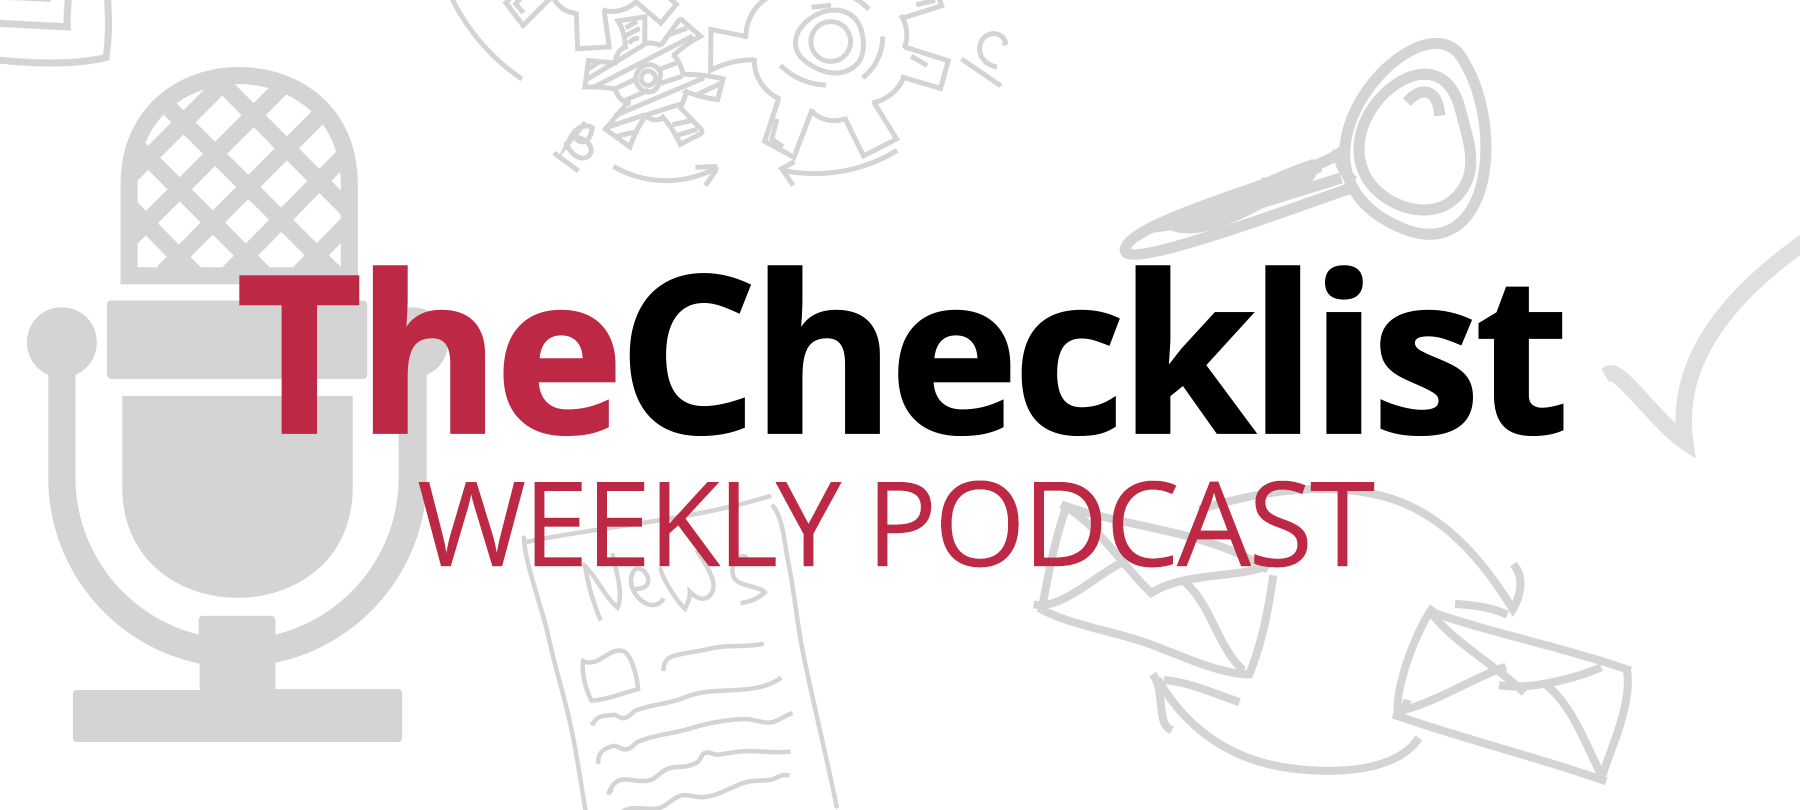 Episode: Checklist 65: An Overview of the Mac's Most Important Built-in Security Features